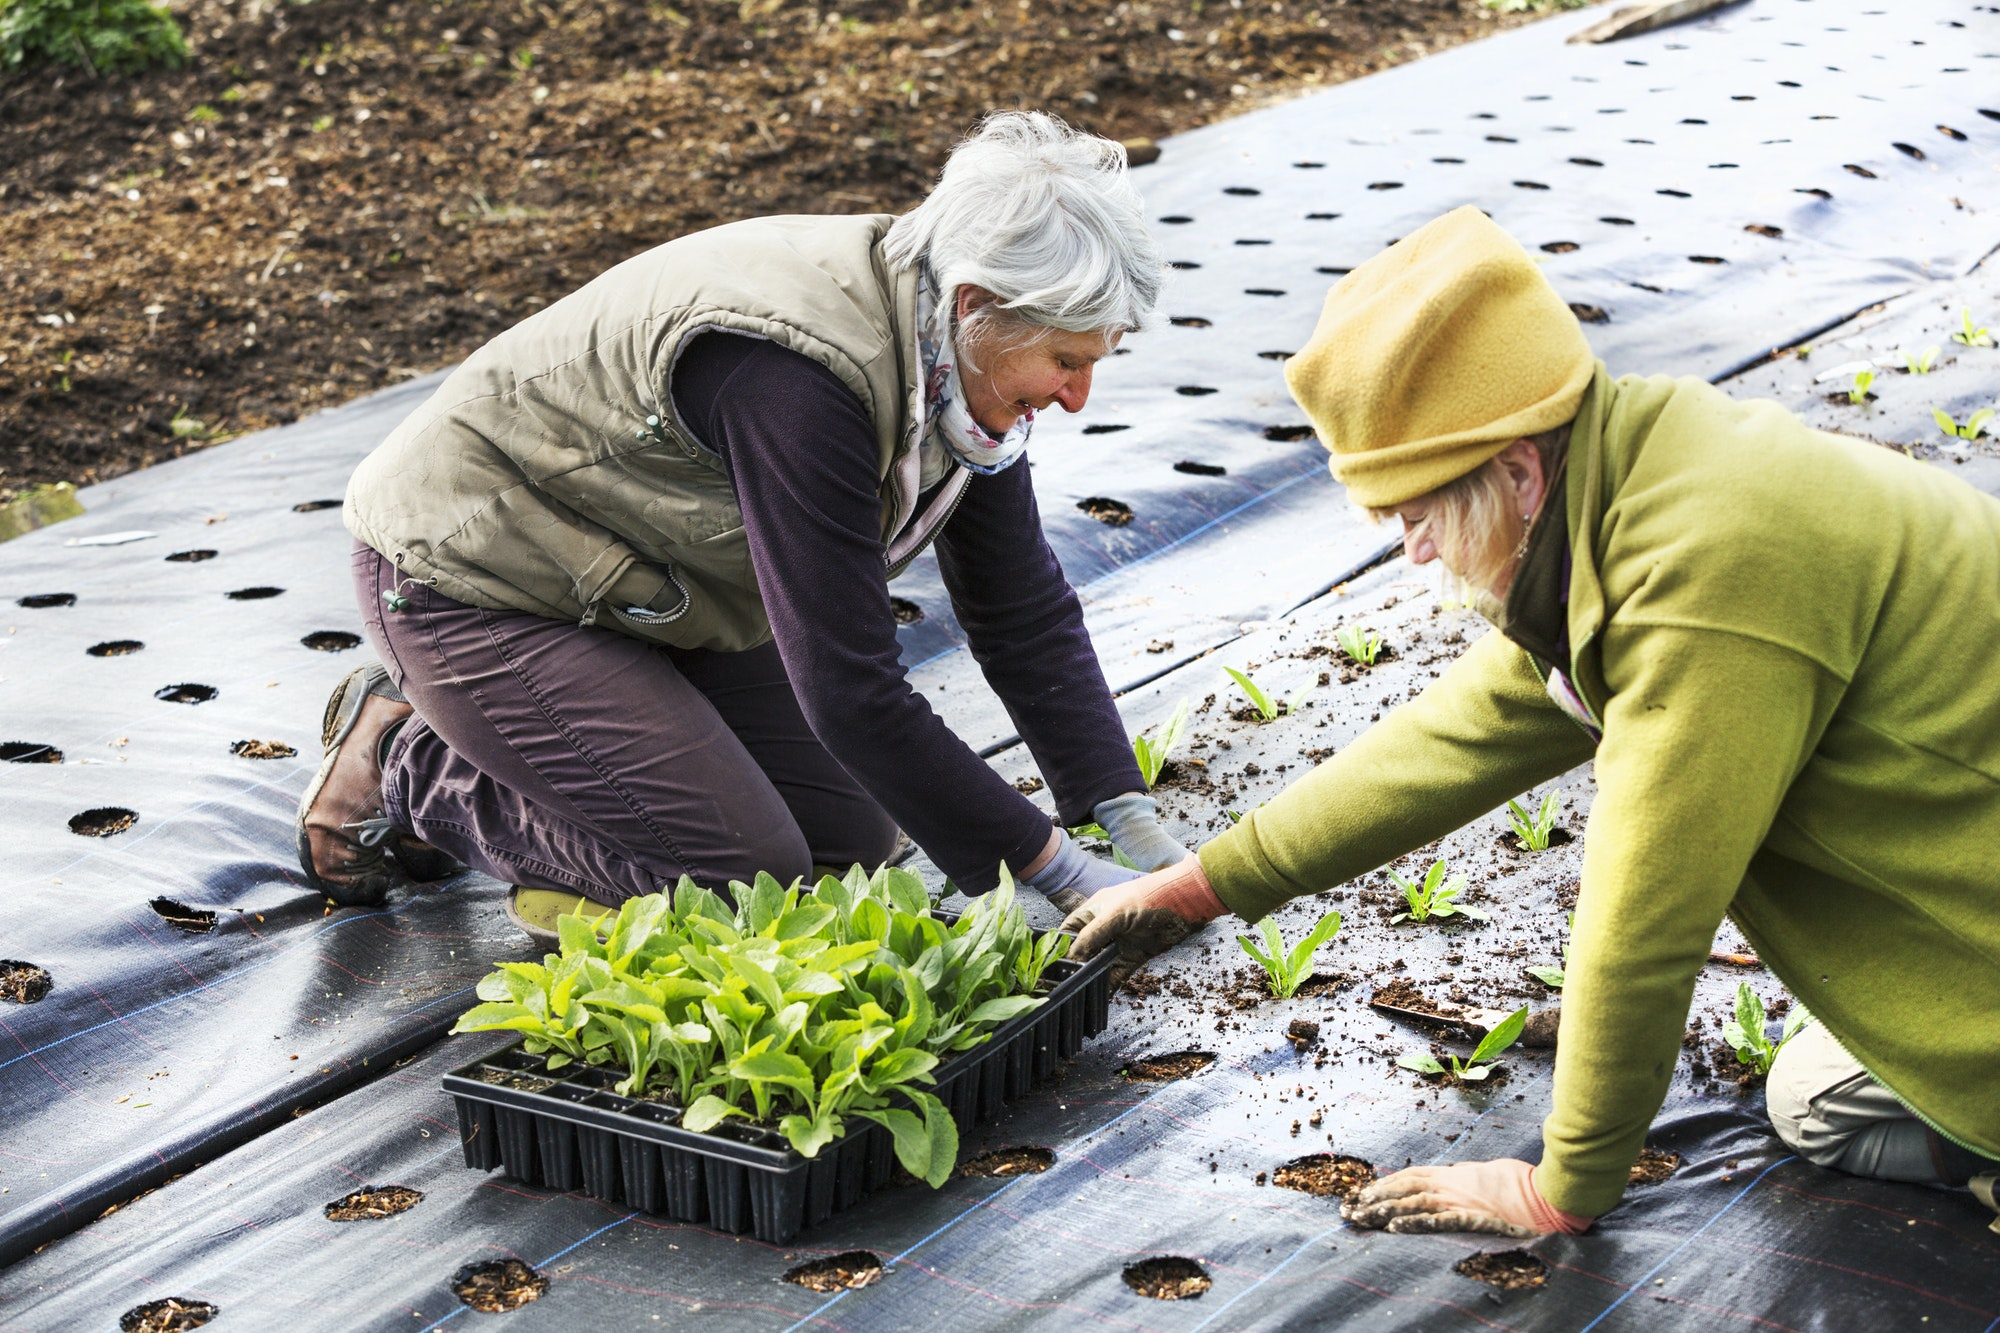 Two people planting seedling plant plugs into the soil, in holes created in moisture retaining weed